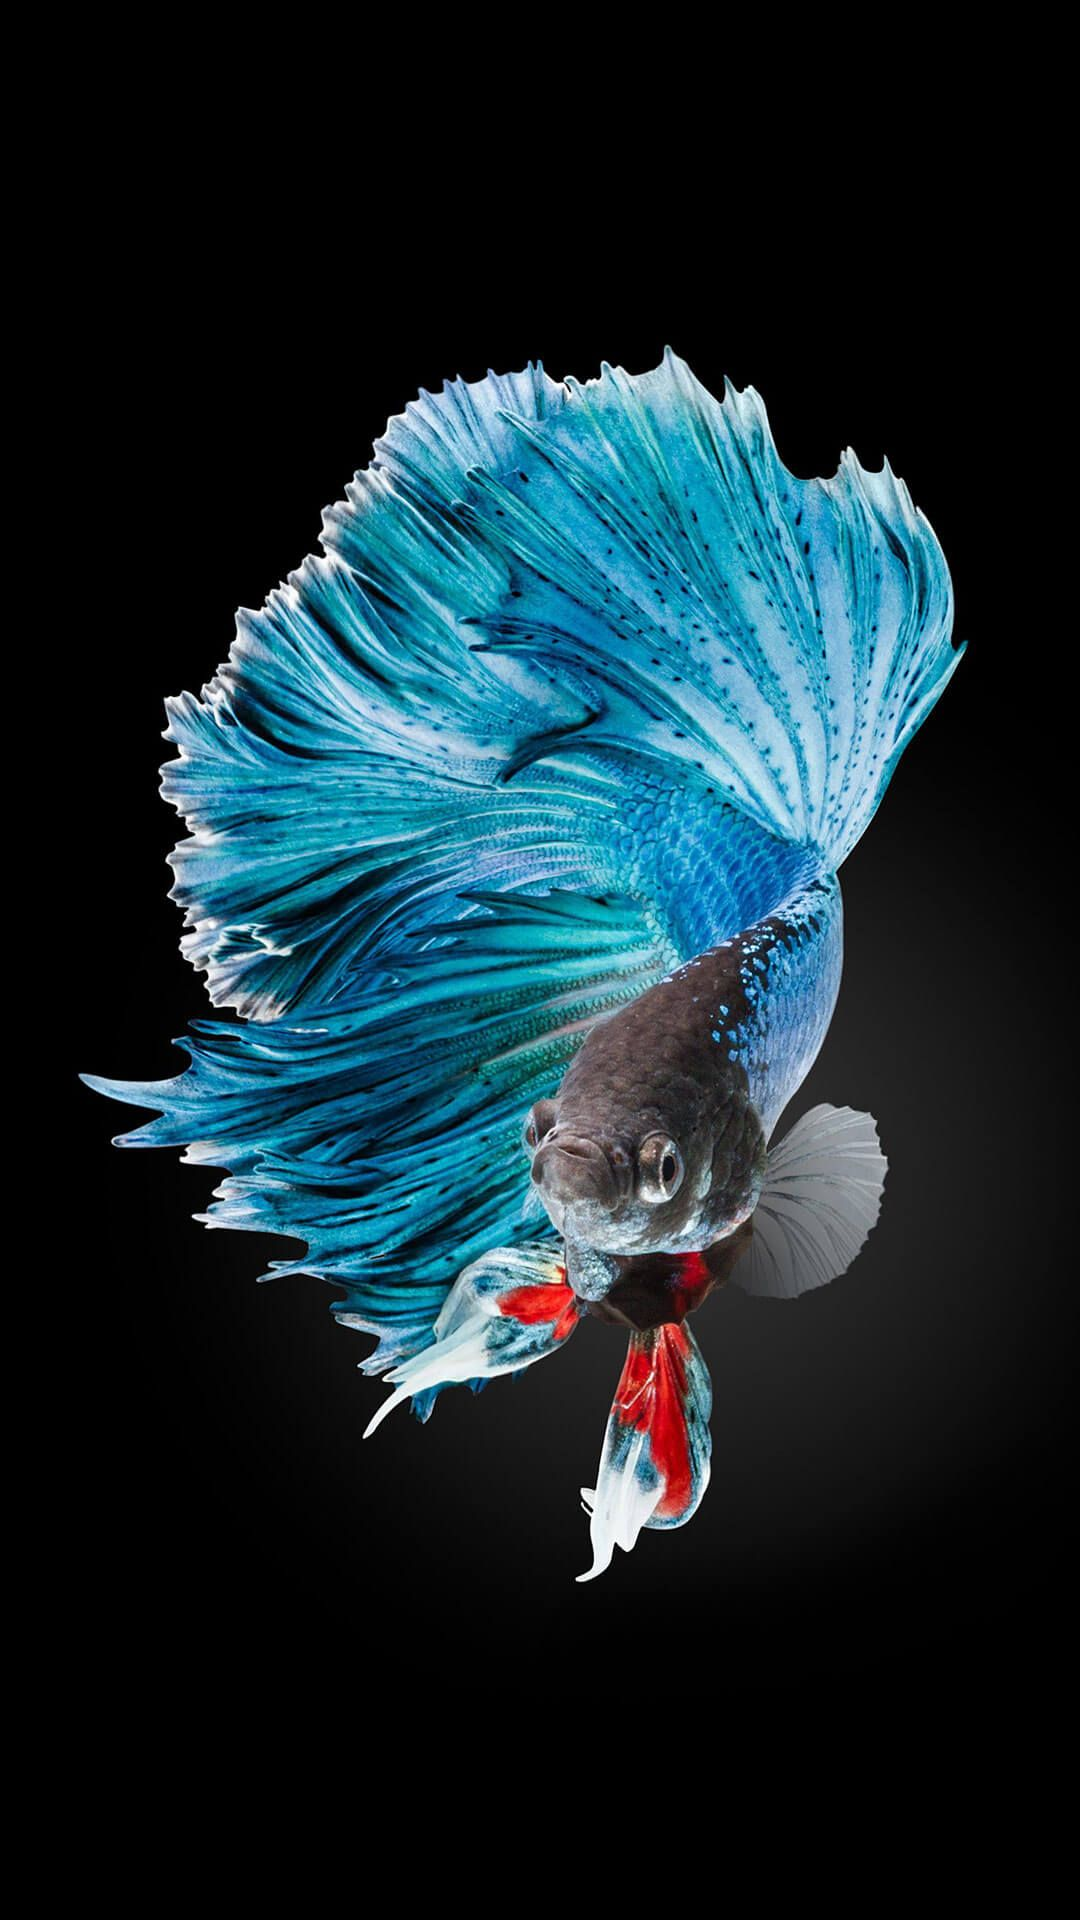 Betta Fish Wallpaper Iphone 6 And Iphone 6s Hd Poisson Combattant Elevage De Poissons Poisson Exotique